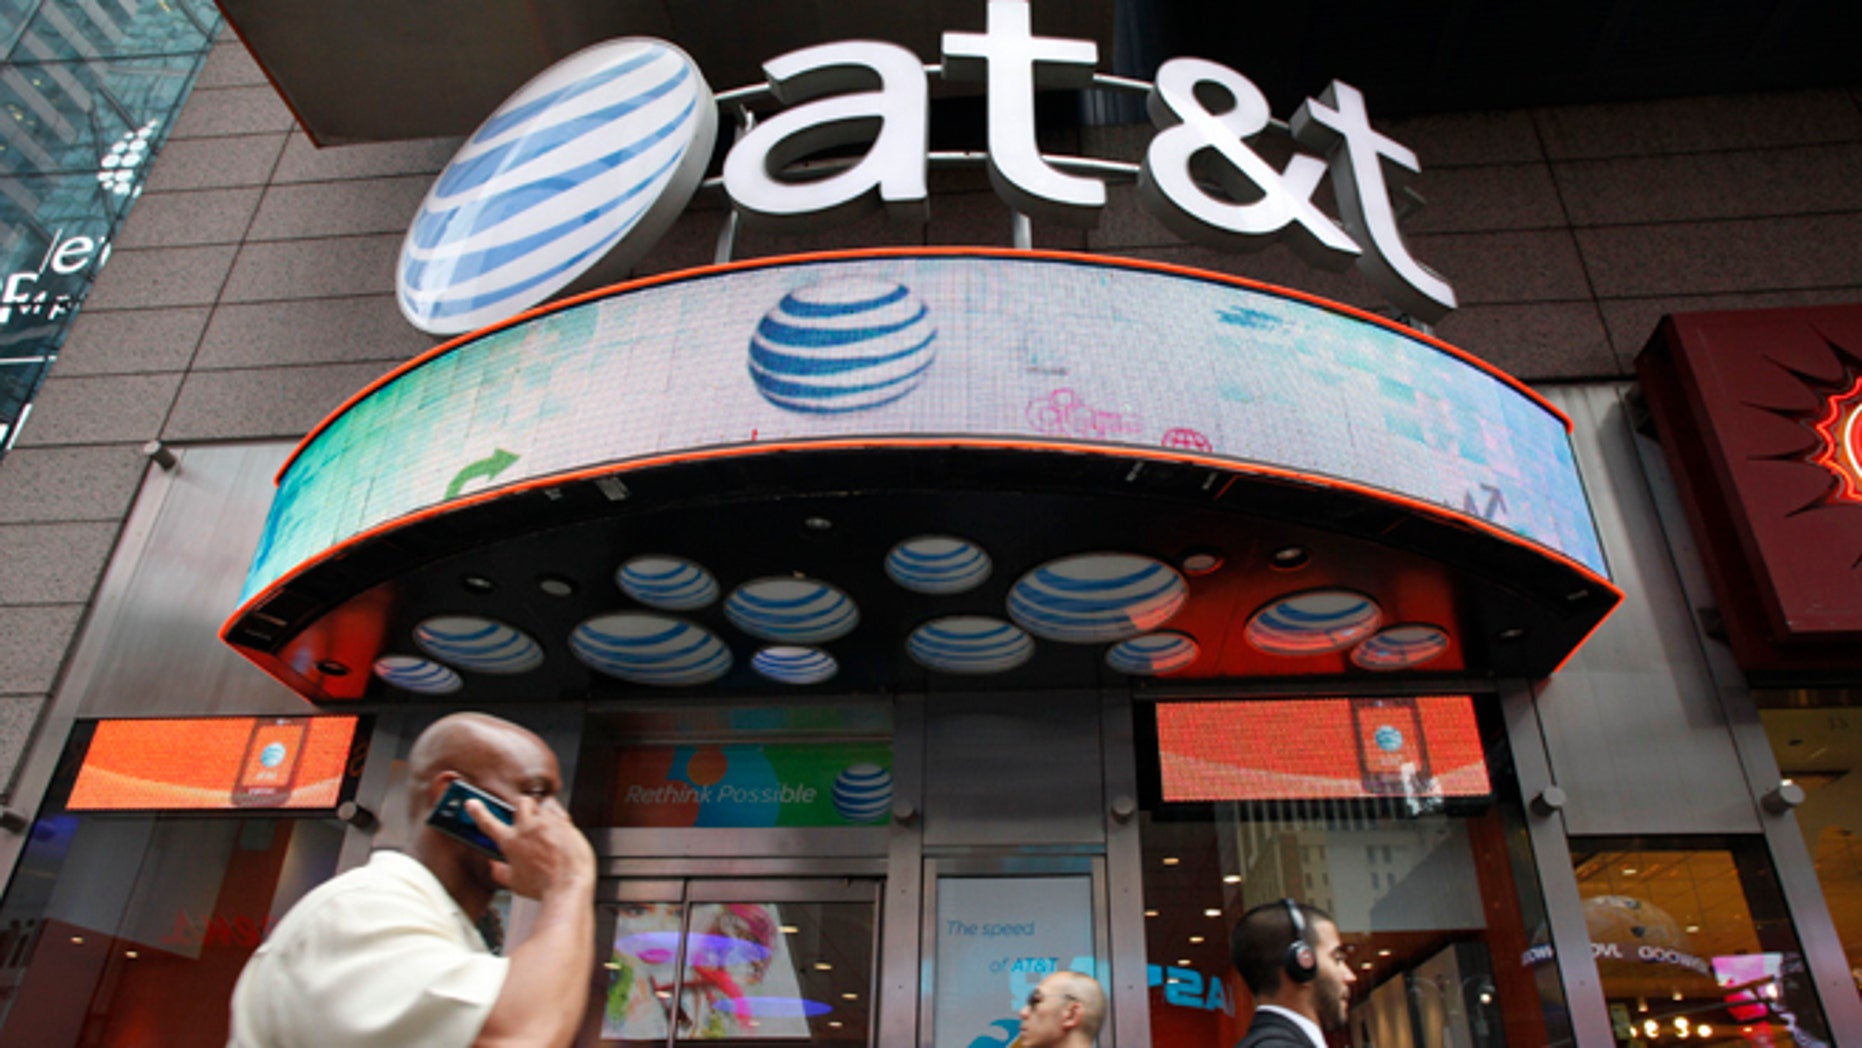 A man uses a cell phone as he walks past an AT&T store in New York.